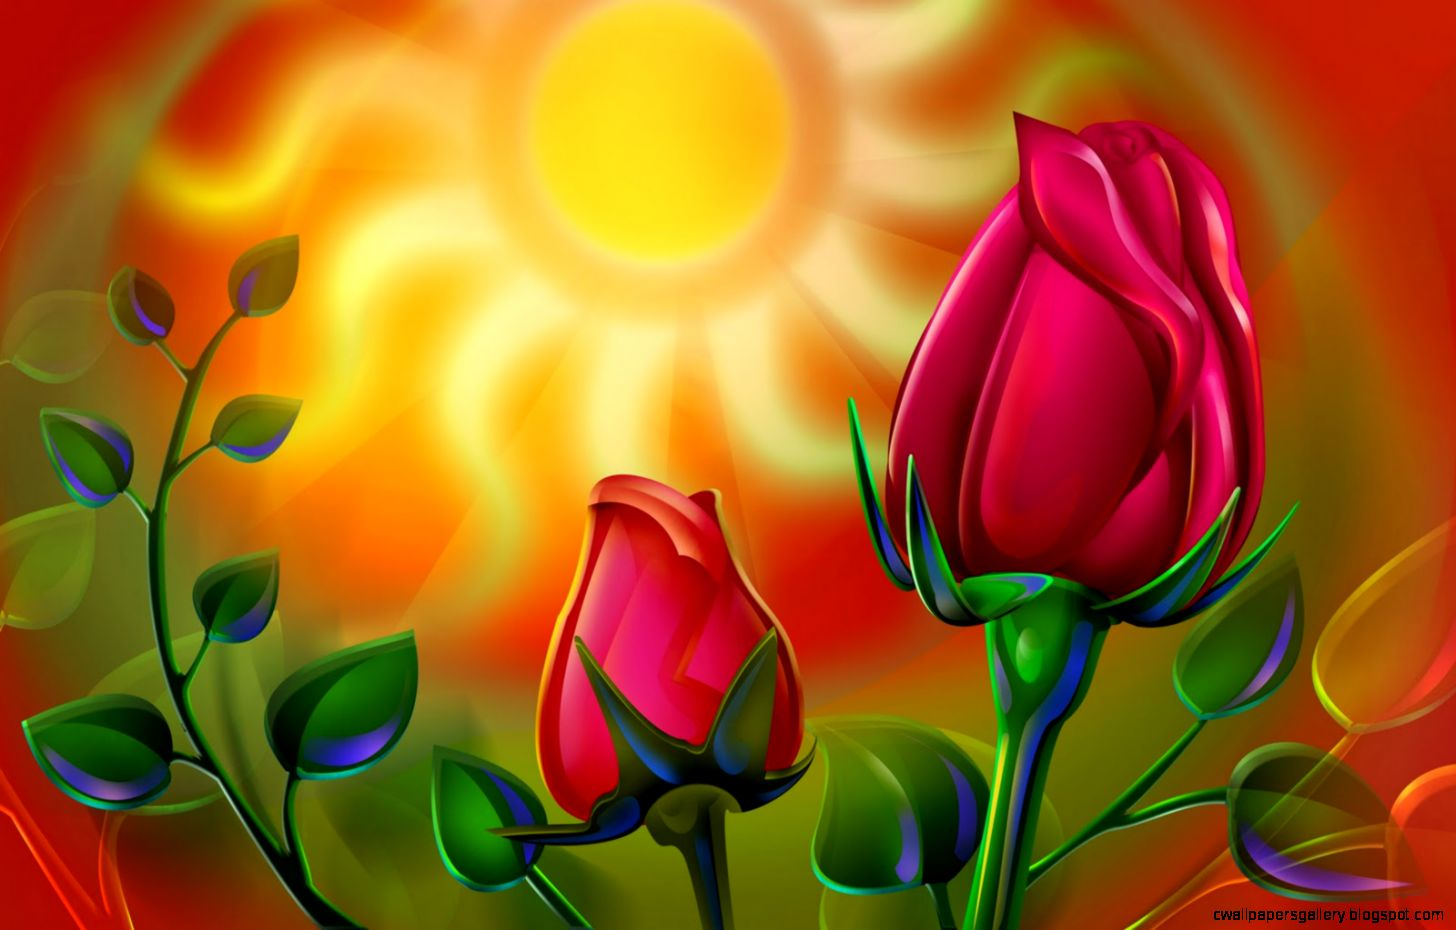 Rose Flowers Wallpaper 3d   Flowers Ideas